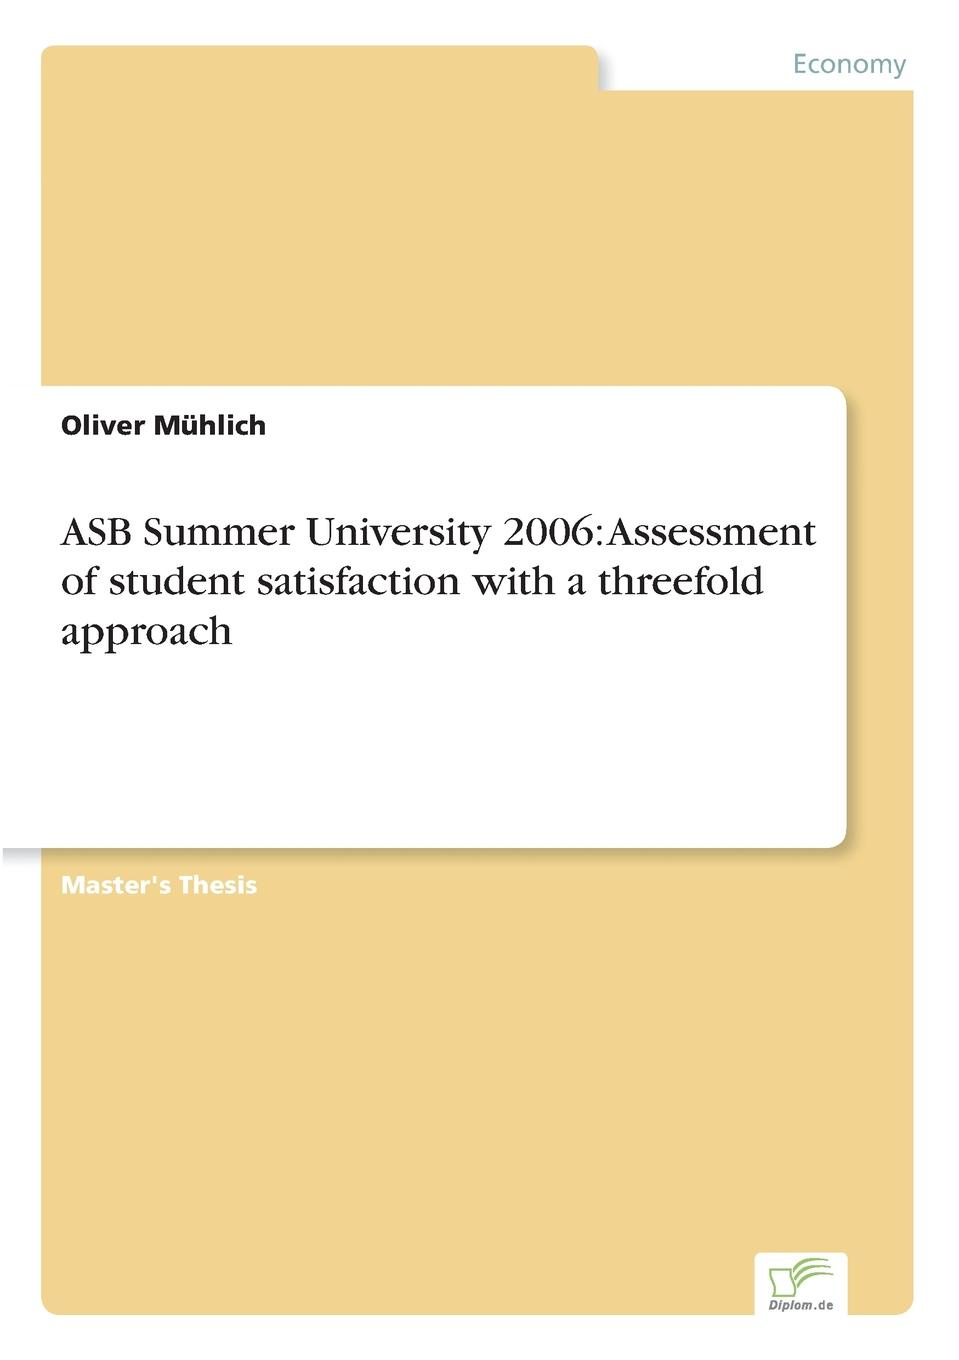 Oliver Mühlich ASB Summer University 2006. Assessment of student satisfaction with a threefold approach цена